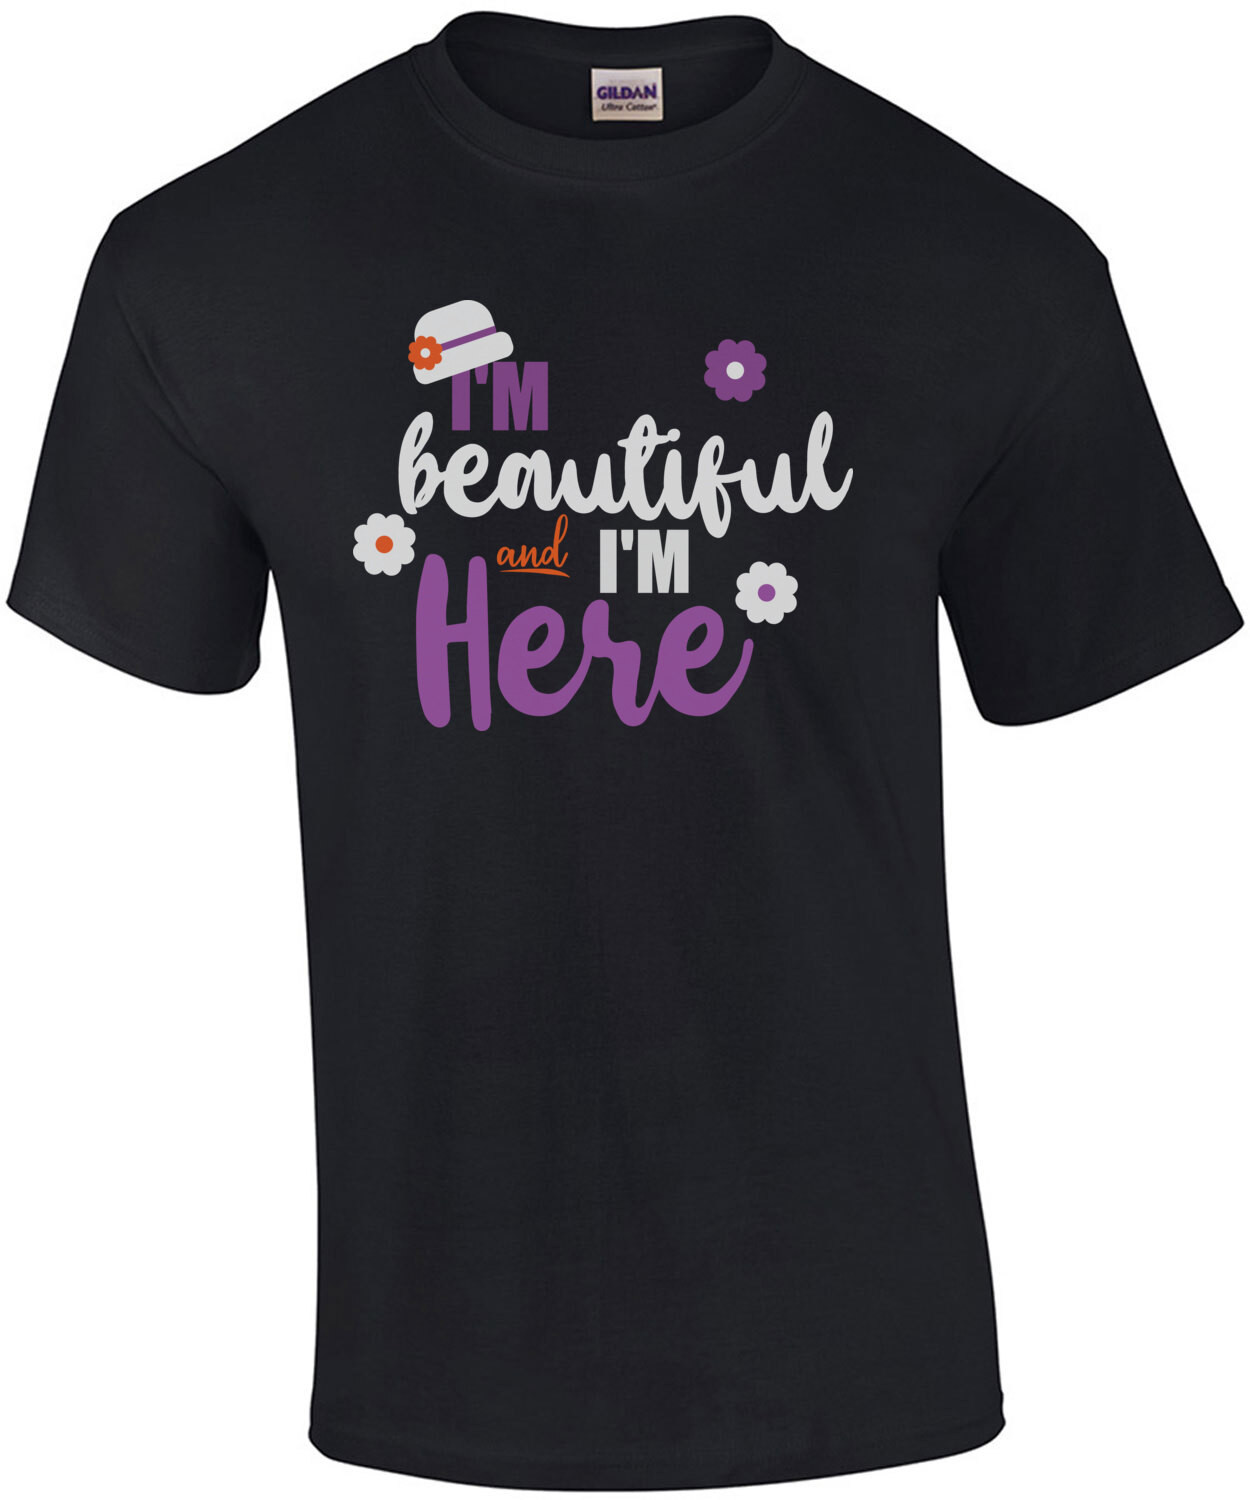 I'm Beautiful and I'm here - The Color Purple - 80's T-Shirt